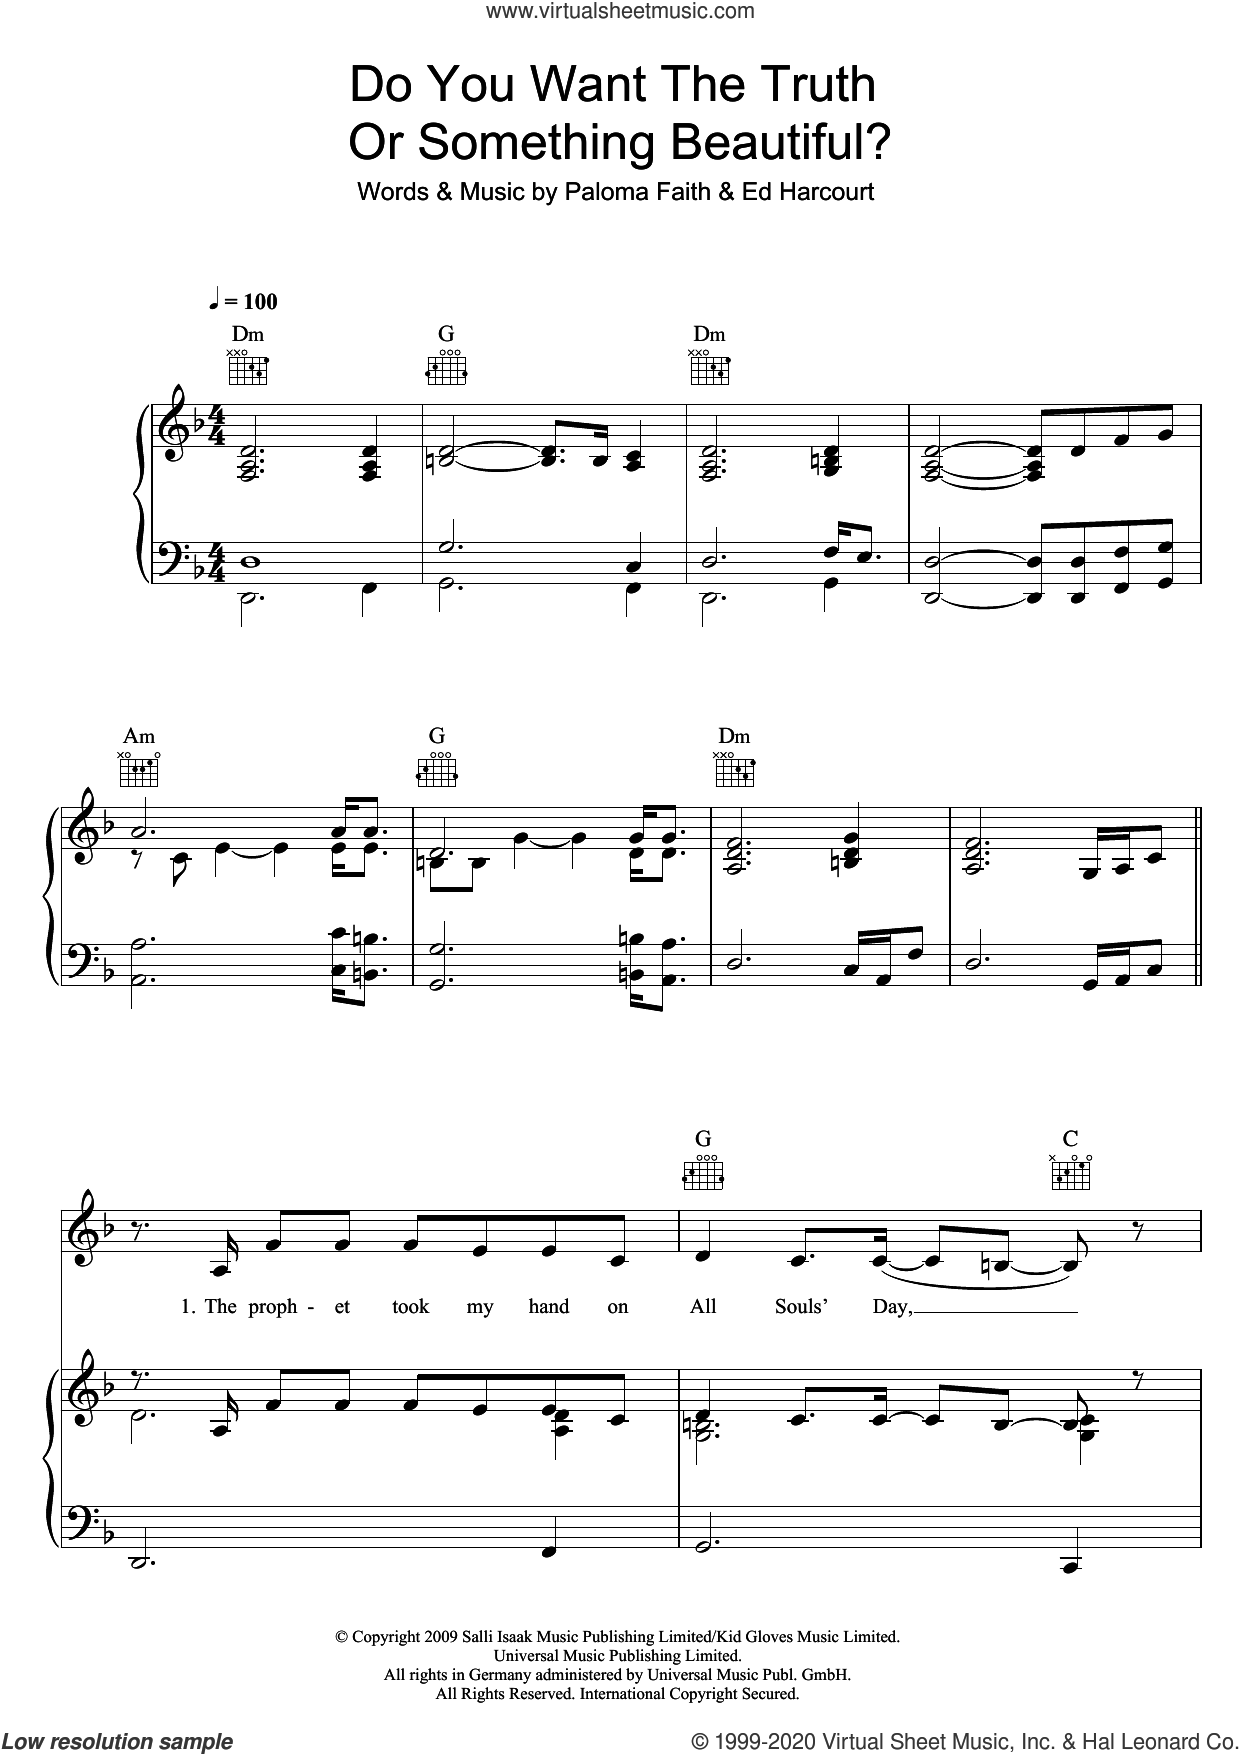 Do You Want The Truth Or Something Beautiful? sheet music for voice, piano or guitar by Paloma Faith and Ed Harcourt, intermediate skill level